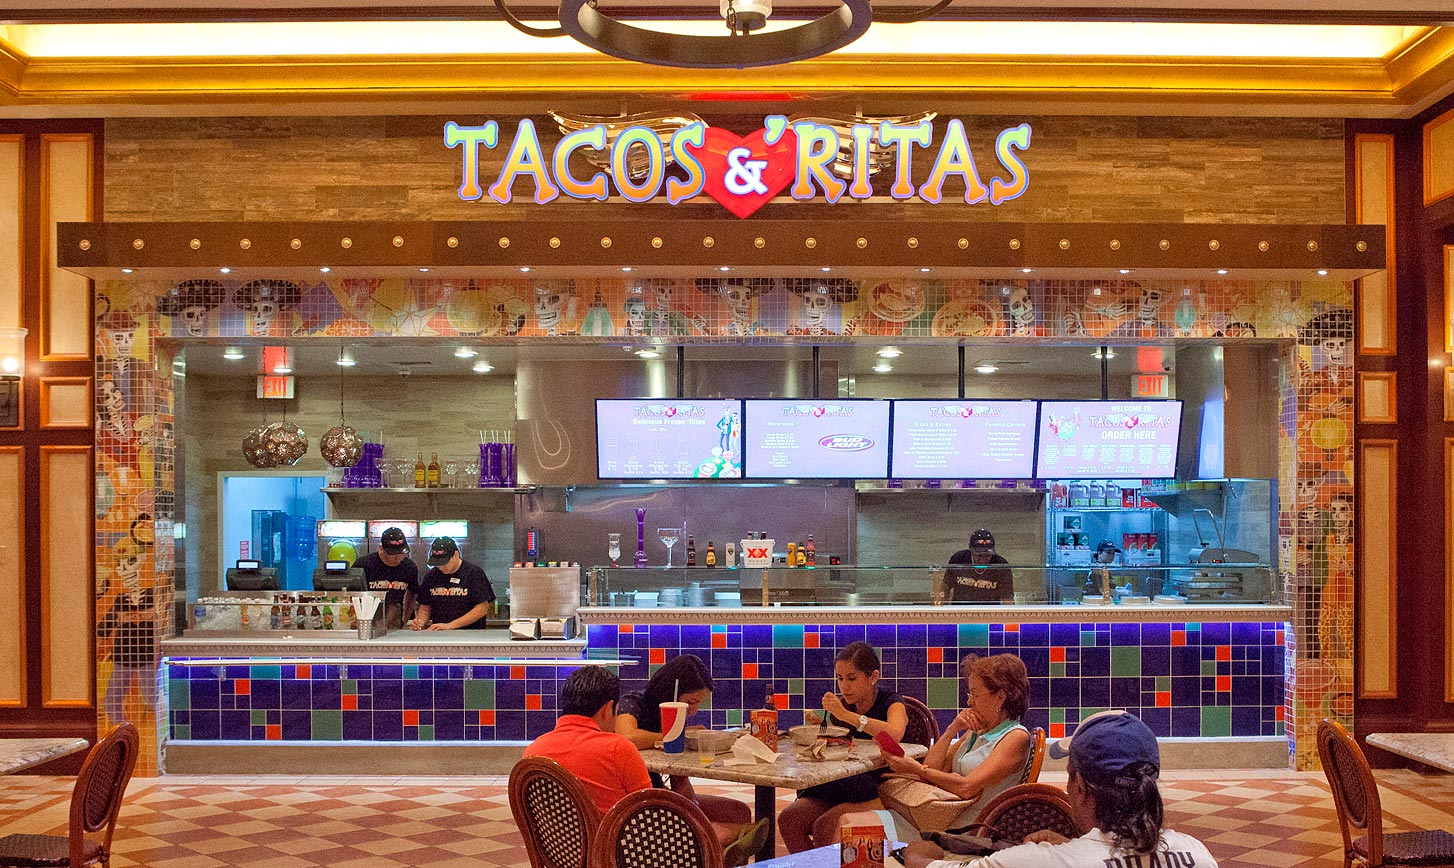 096 - Tacos-and-Ritas-Glass-Mosaic-Storefront-Mural